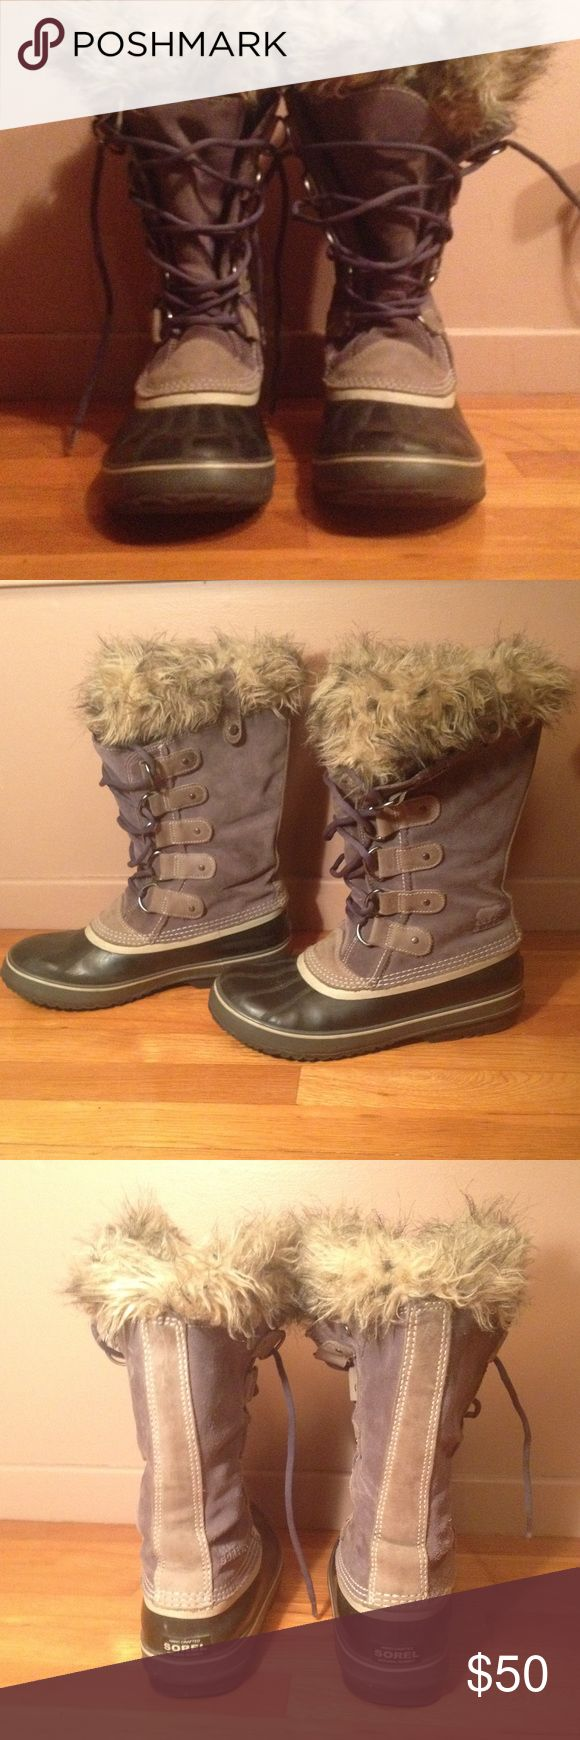 Sorel Joan of Arc winter boots 11 Very cute boots. Well loved but lots of life left. Tread on bottom is worn but still waterproof. Please see pics. Sorel Shoes Winter & Rain Boots